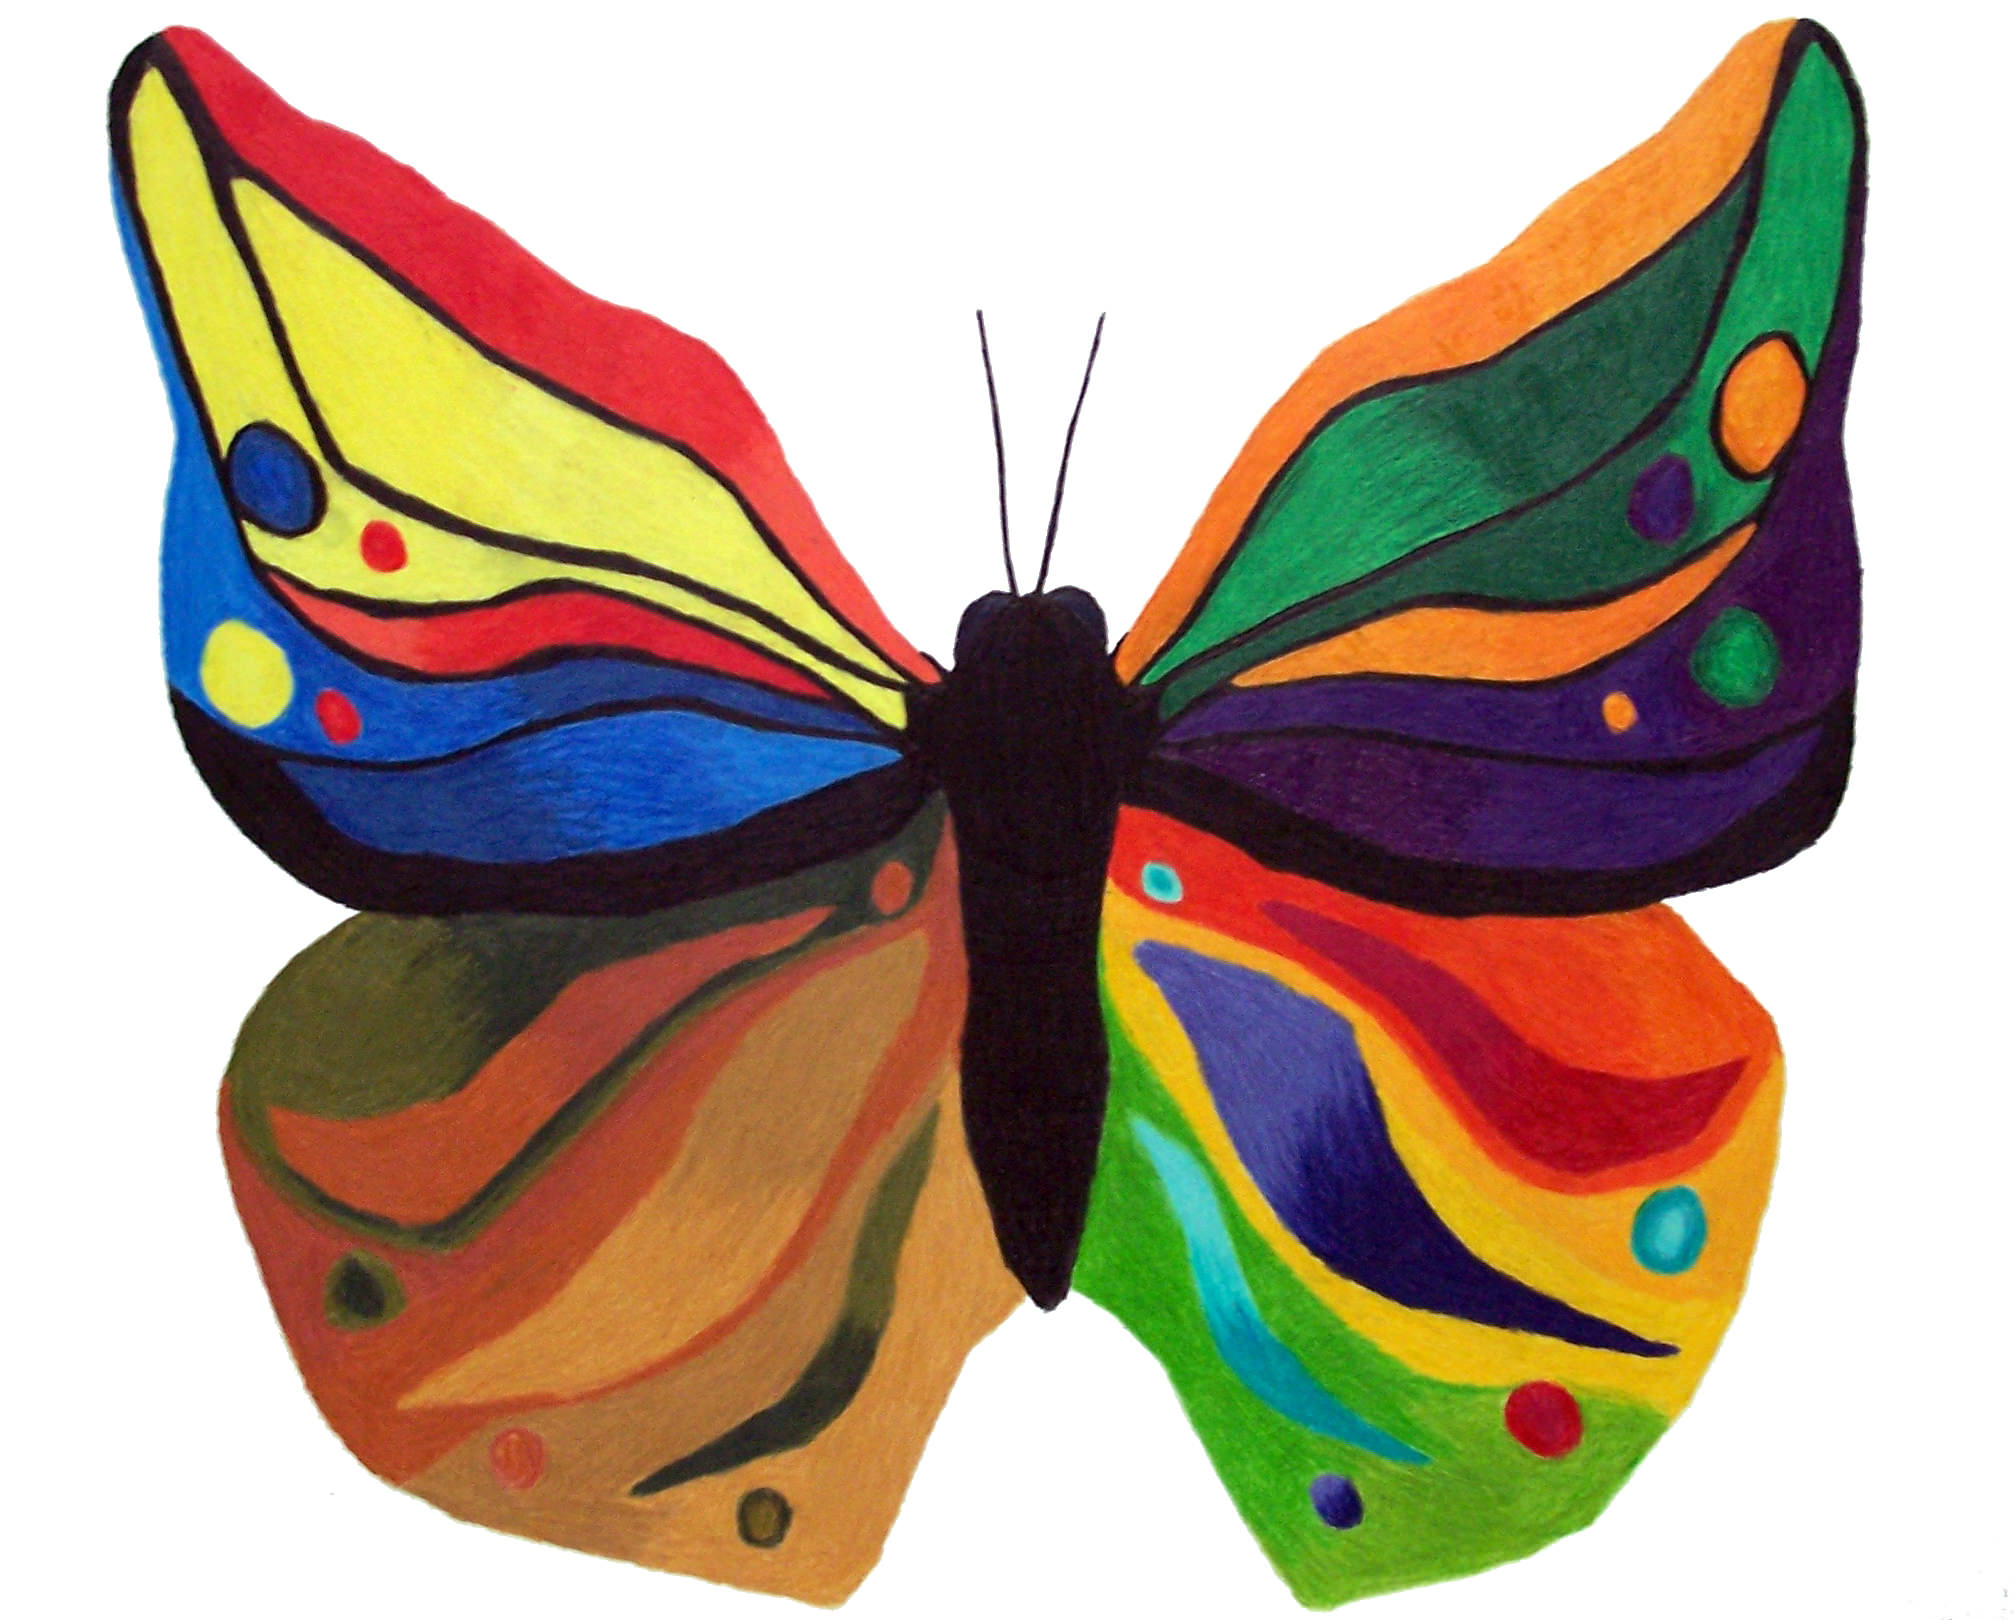 2016x1620 genuine butterflies images color butterfly drawings art ideas